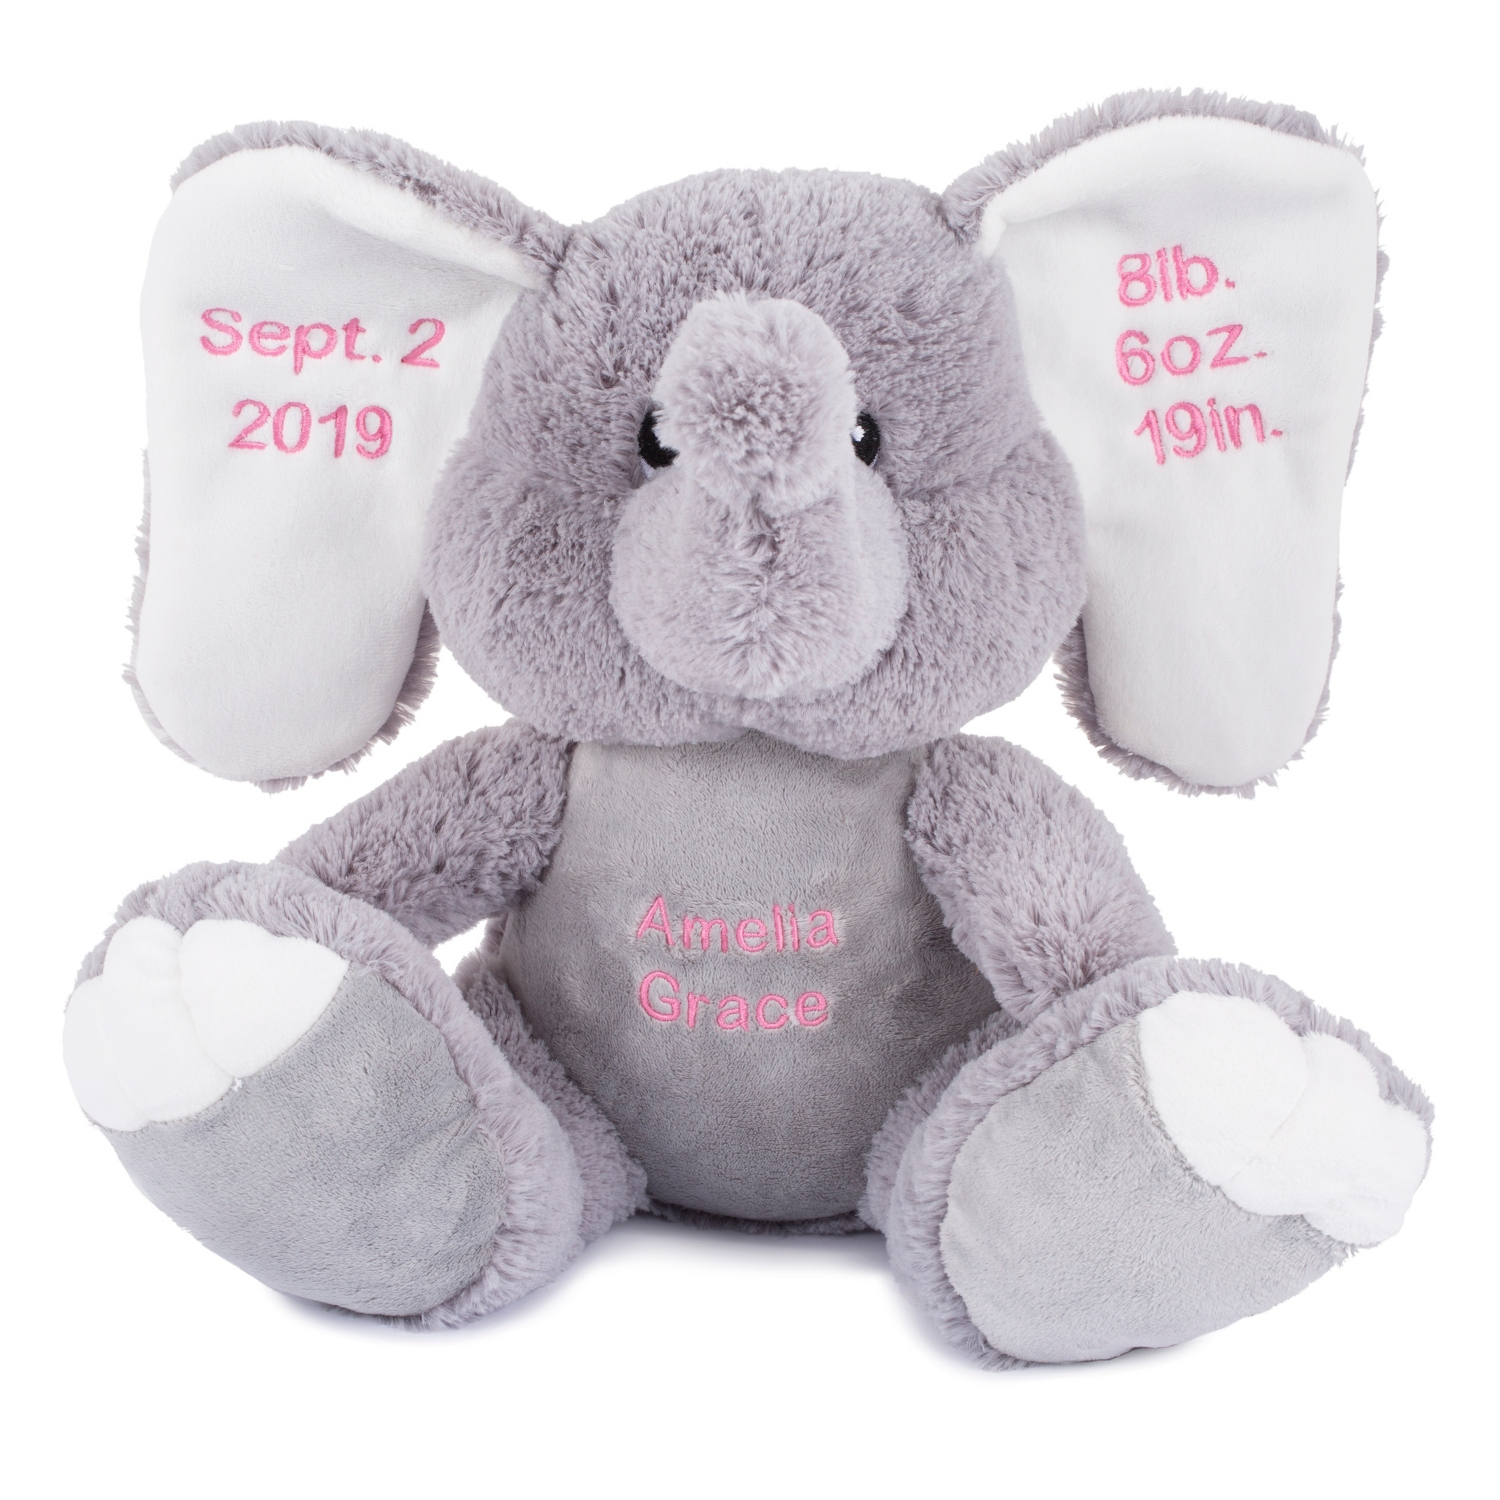 Personalized gifts for babies and newborns at things remembered plush elephant plush elephant negle Choice Image